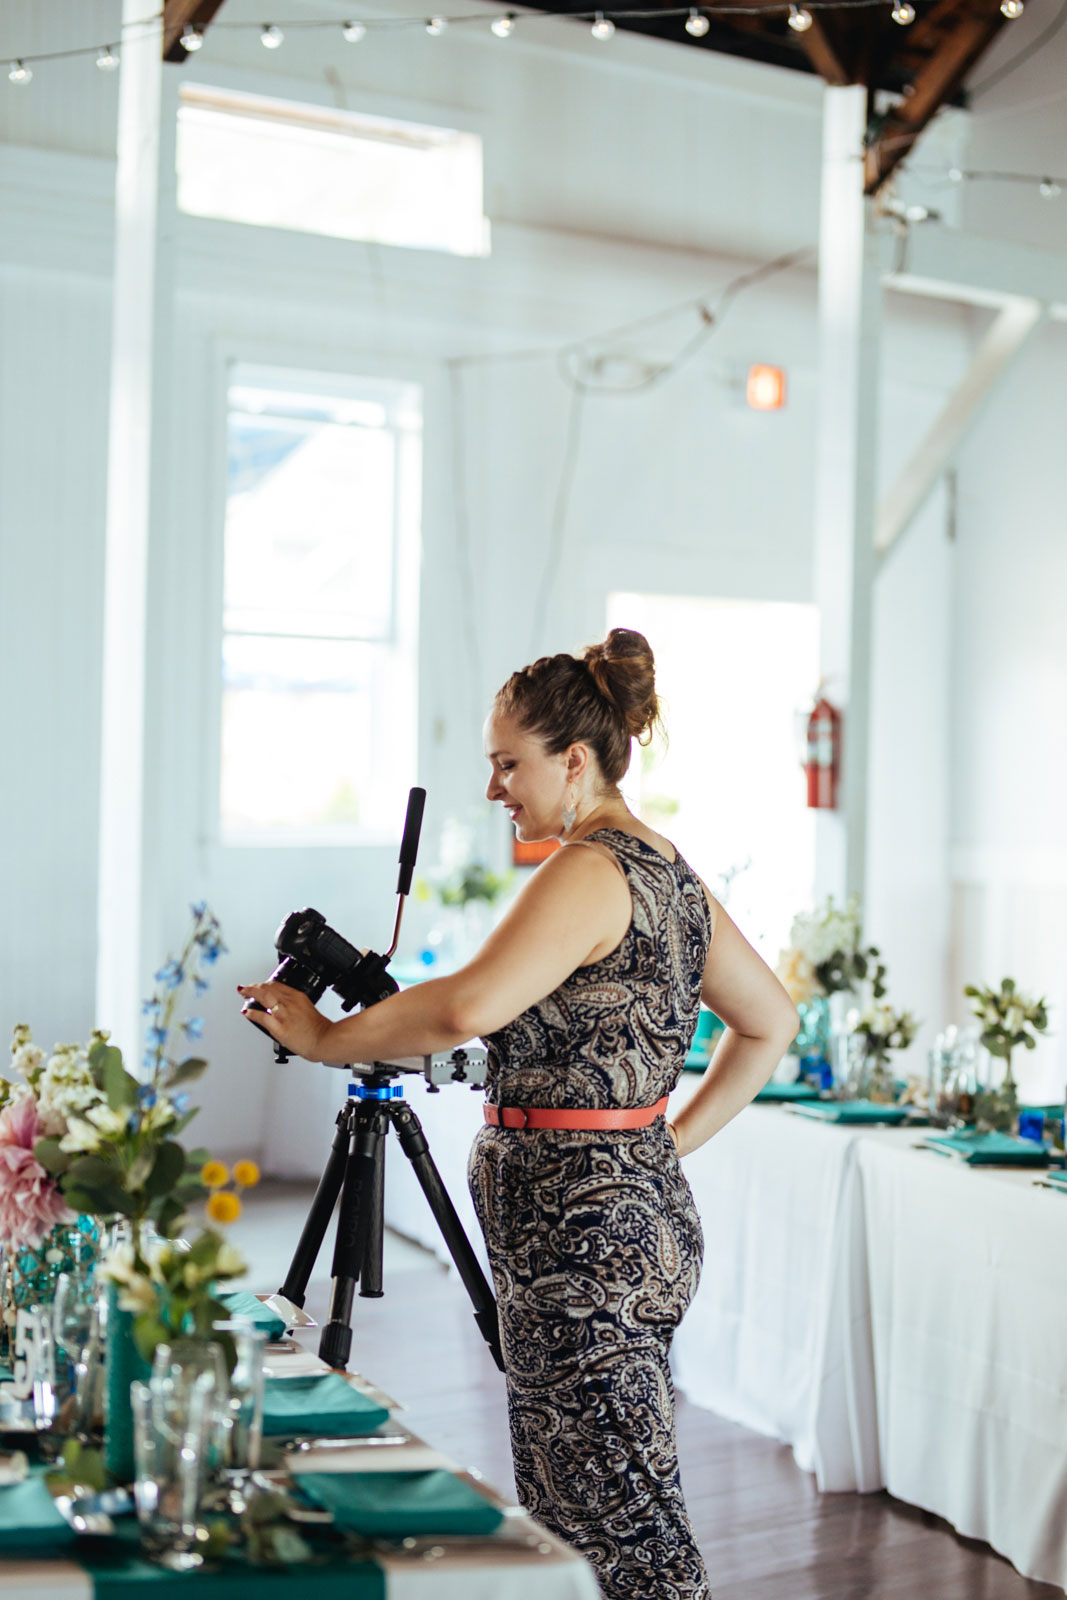 NYC wedding photographer and videographer Elizabeth Mealey adjusting the camera while filming a wedding